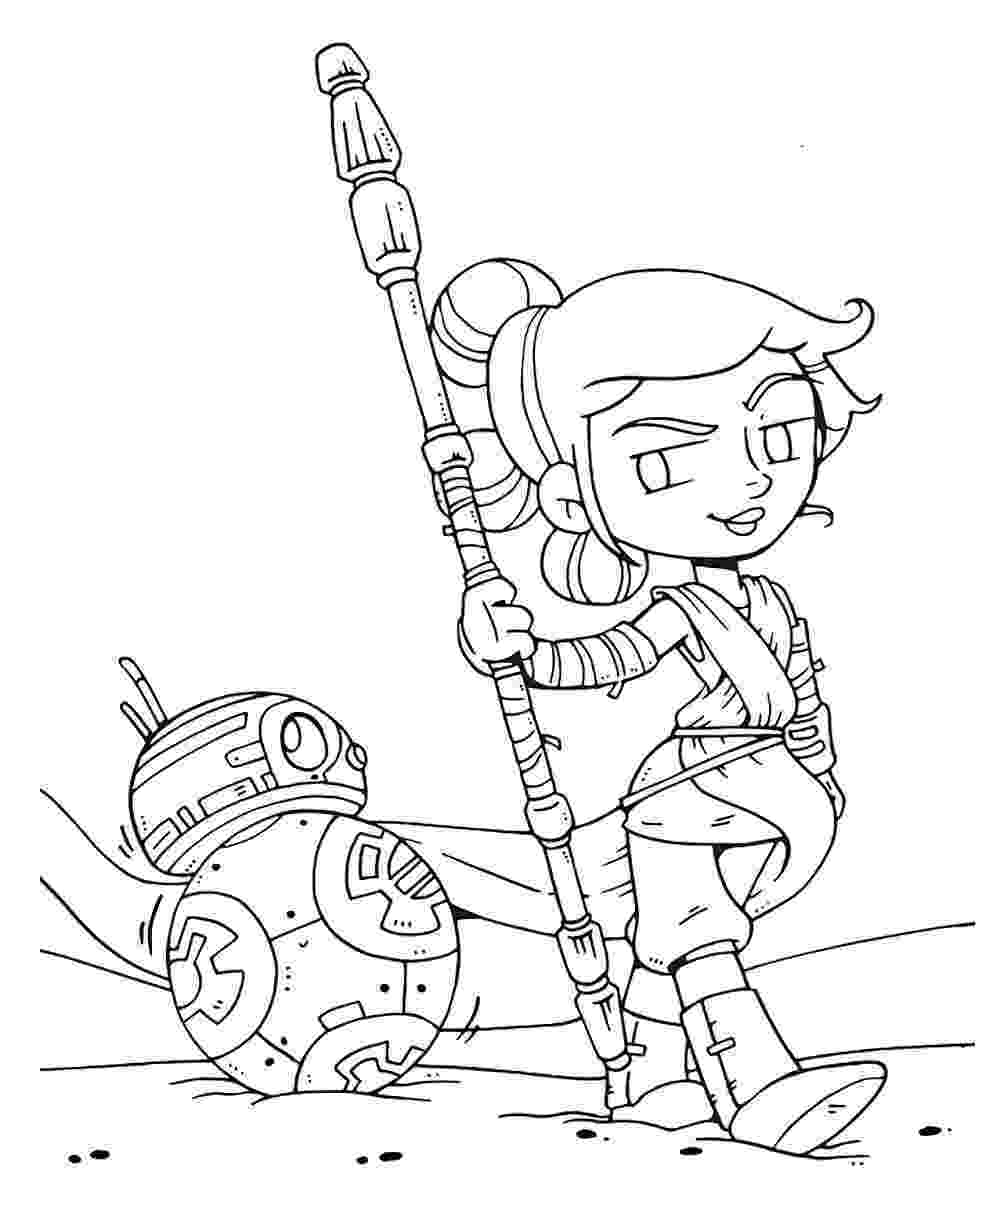 star wars the clone wars coloring pages to print star wars coloring pages stormtrooper star wars colors wars star the coloring to pages print clone wars